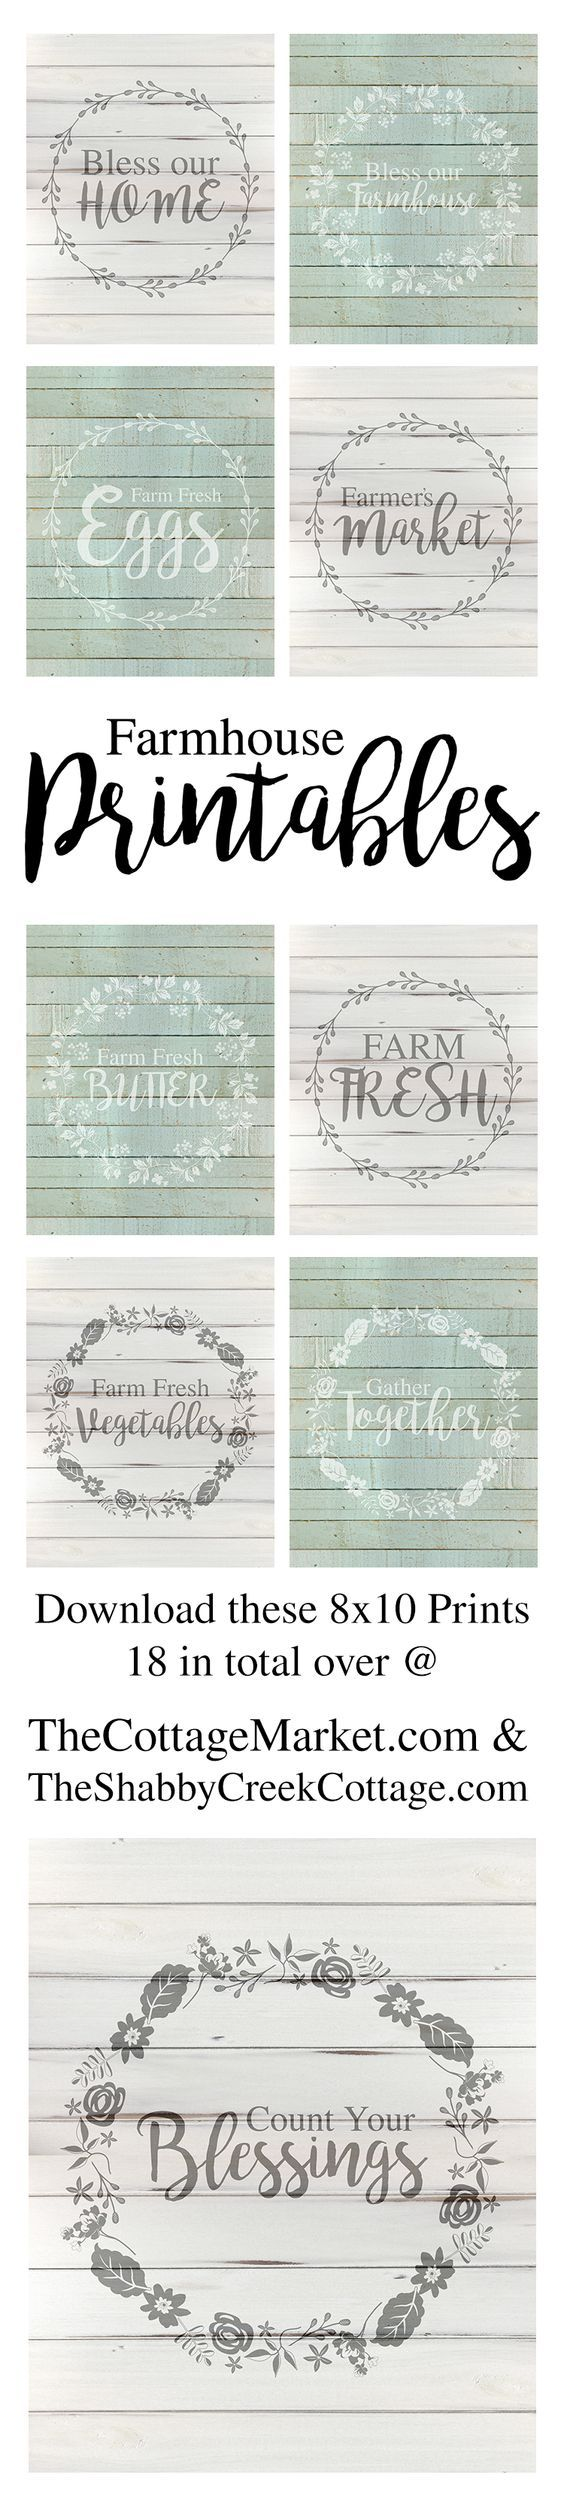 free farmhouse printables with sayings printable art farmhouse decor prints on farmhouse kitchen quotes free printable id=81096